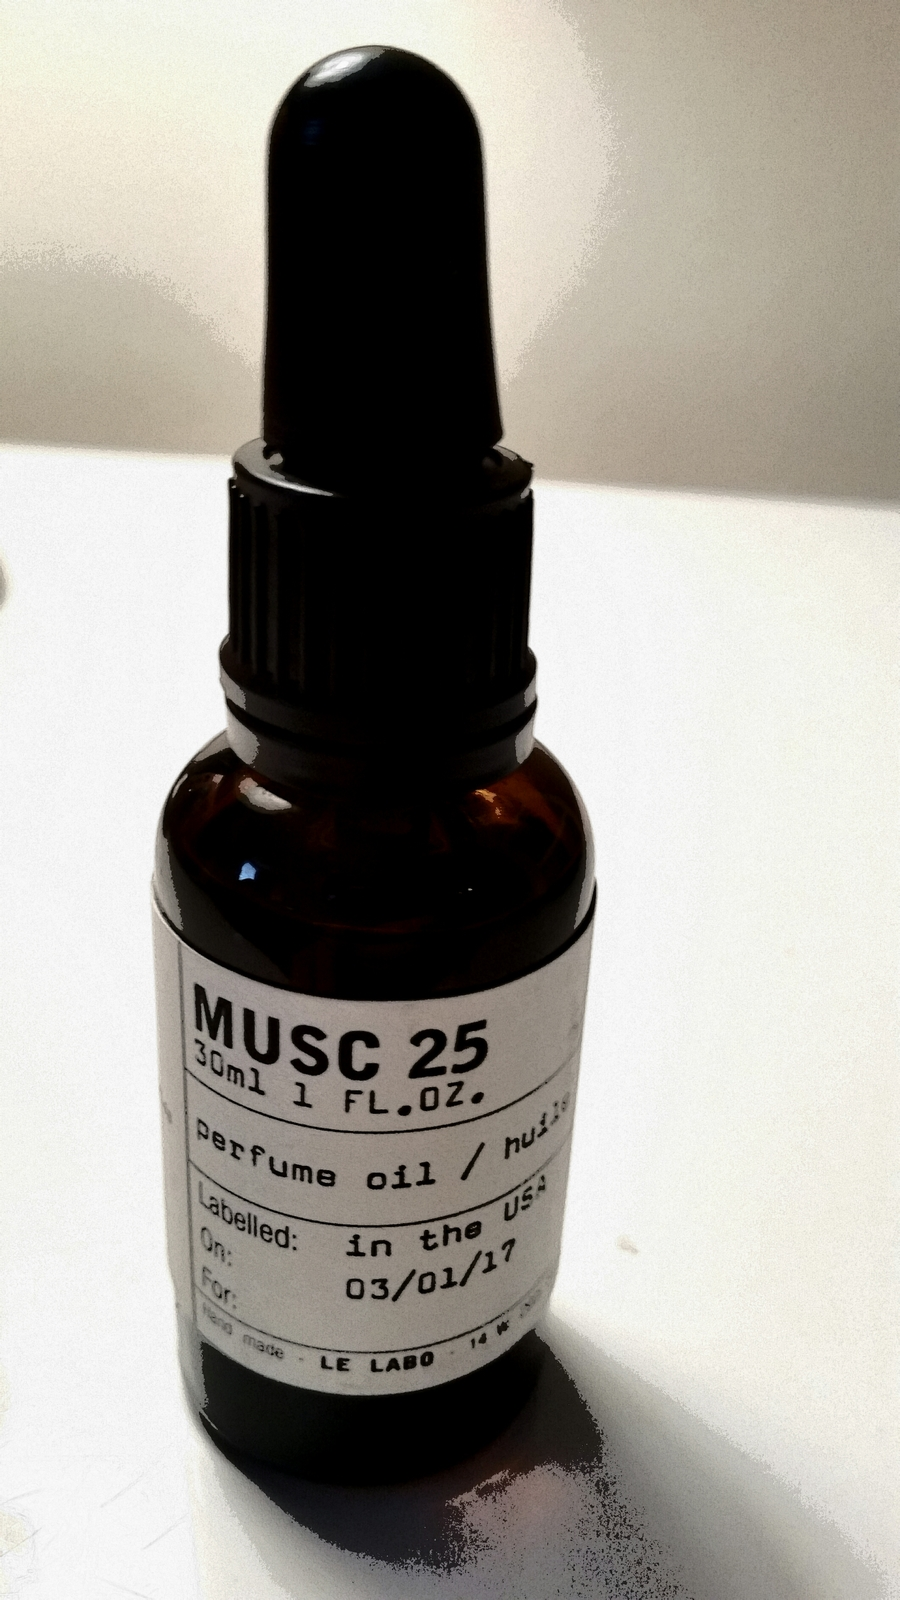 MUSC 25 by LE LABO 5ml Travel Roll On Ambergris Rose Cedar Perfume Oil L.A. M25